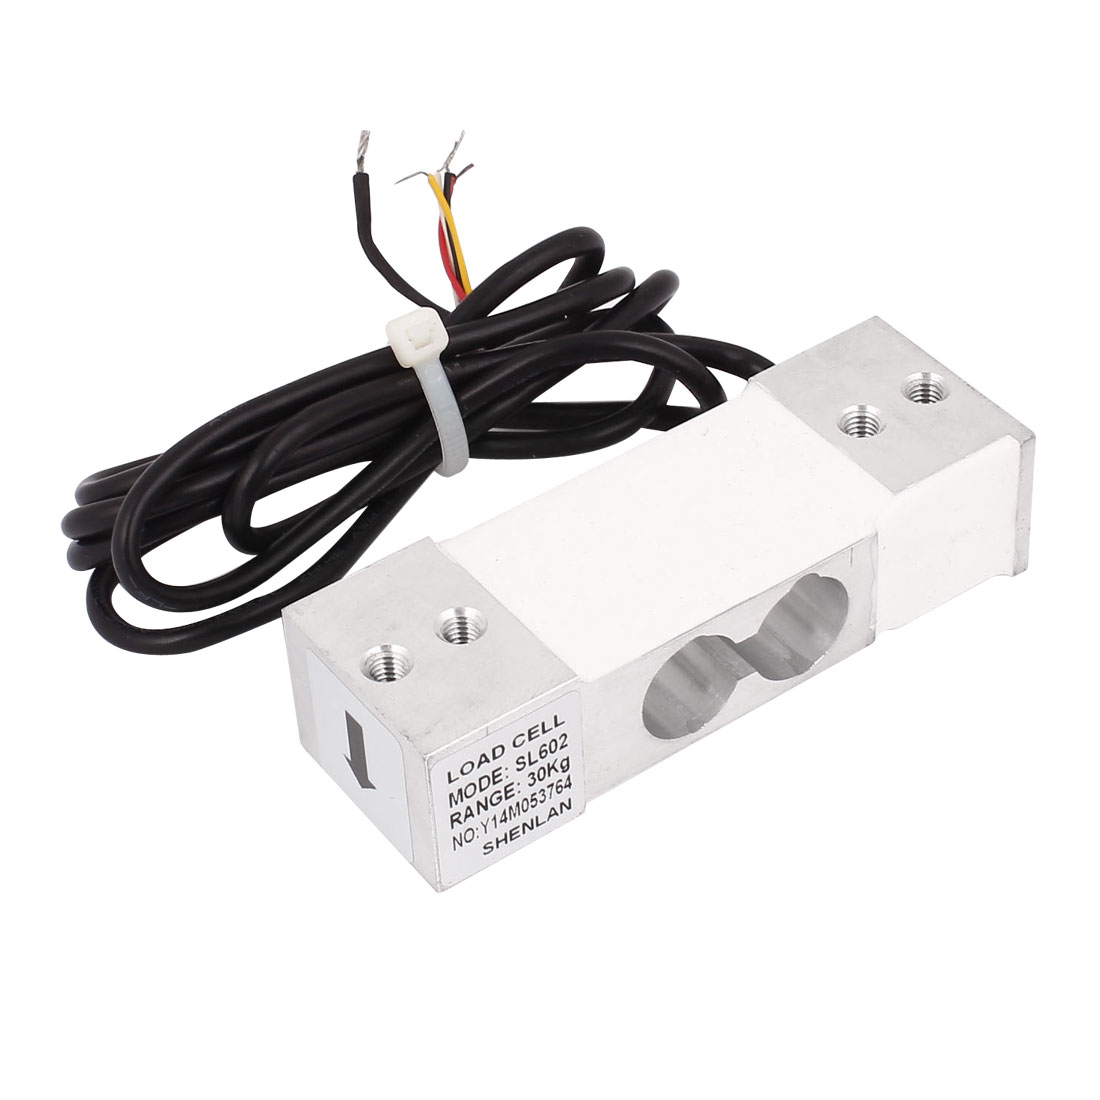 88mmx30mmx22mm Weighing Electronic Balance Wired Load Cell Sensor 0-30Kg